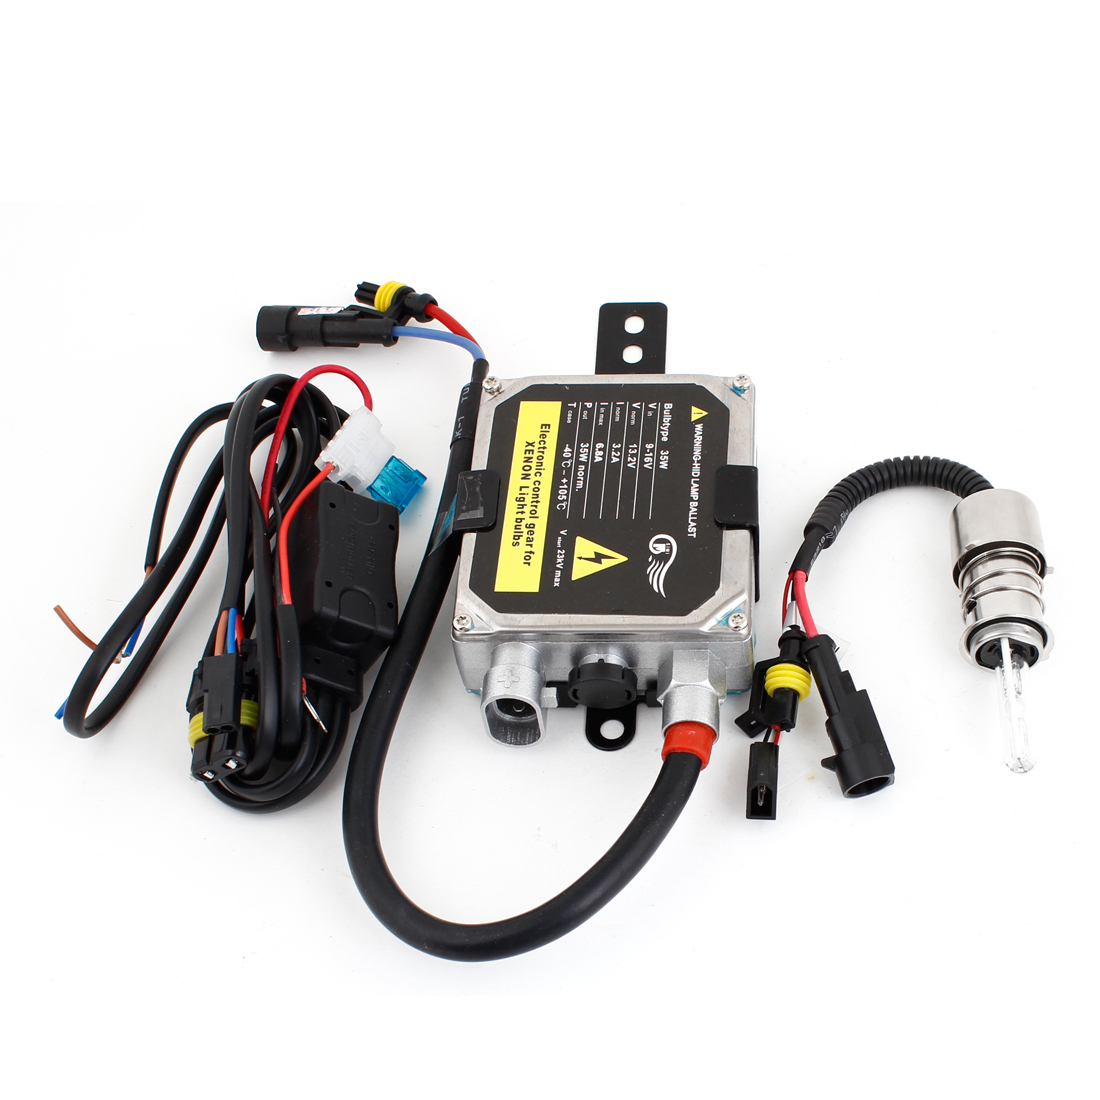 Motorcycle DC 12V 35W 8000K H6 HID Xenon Light Ballast Kit